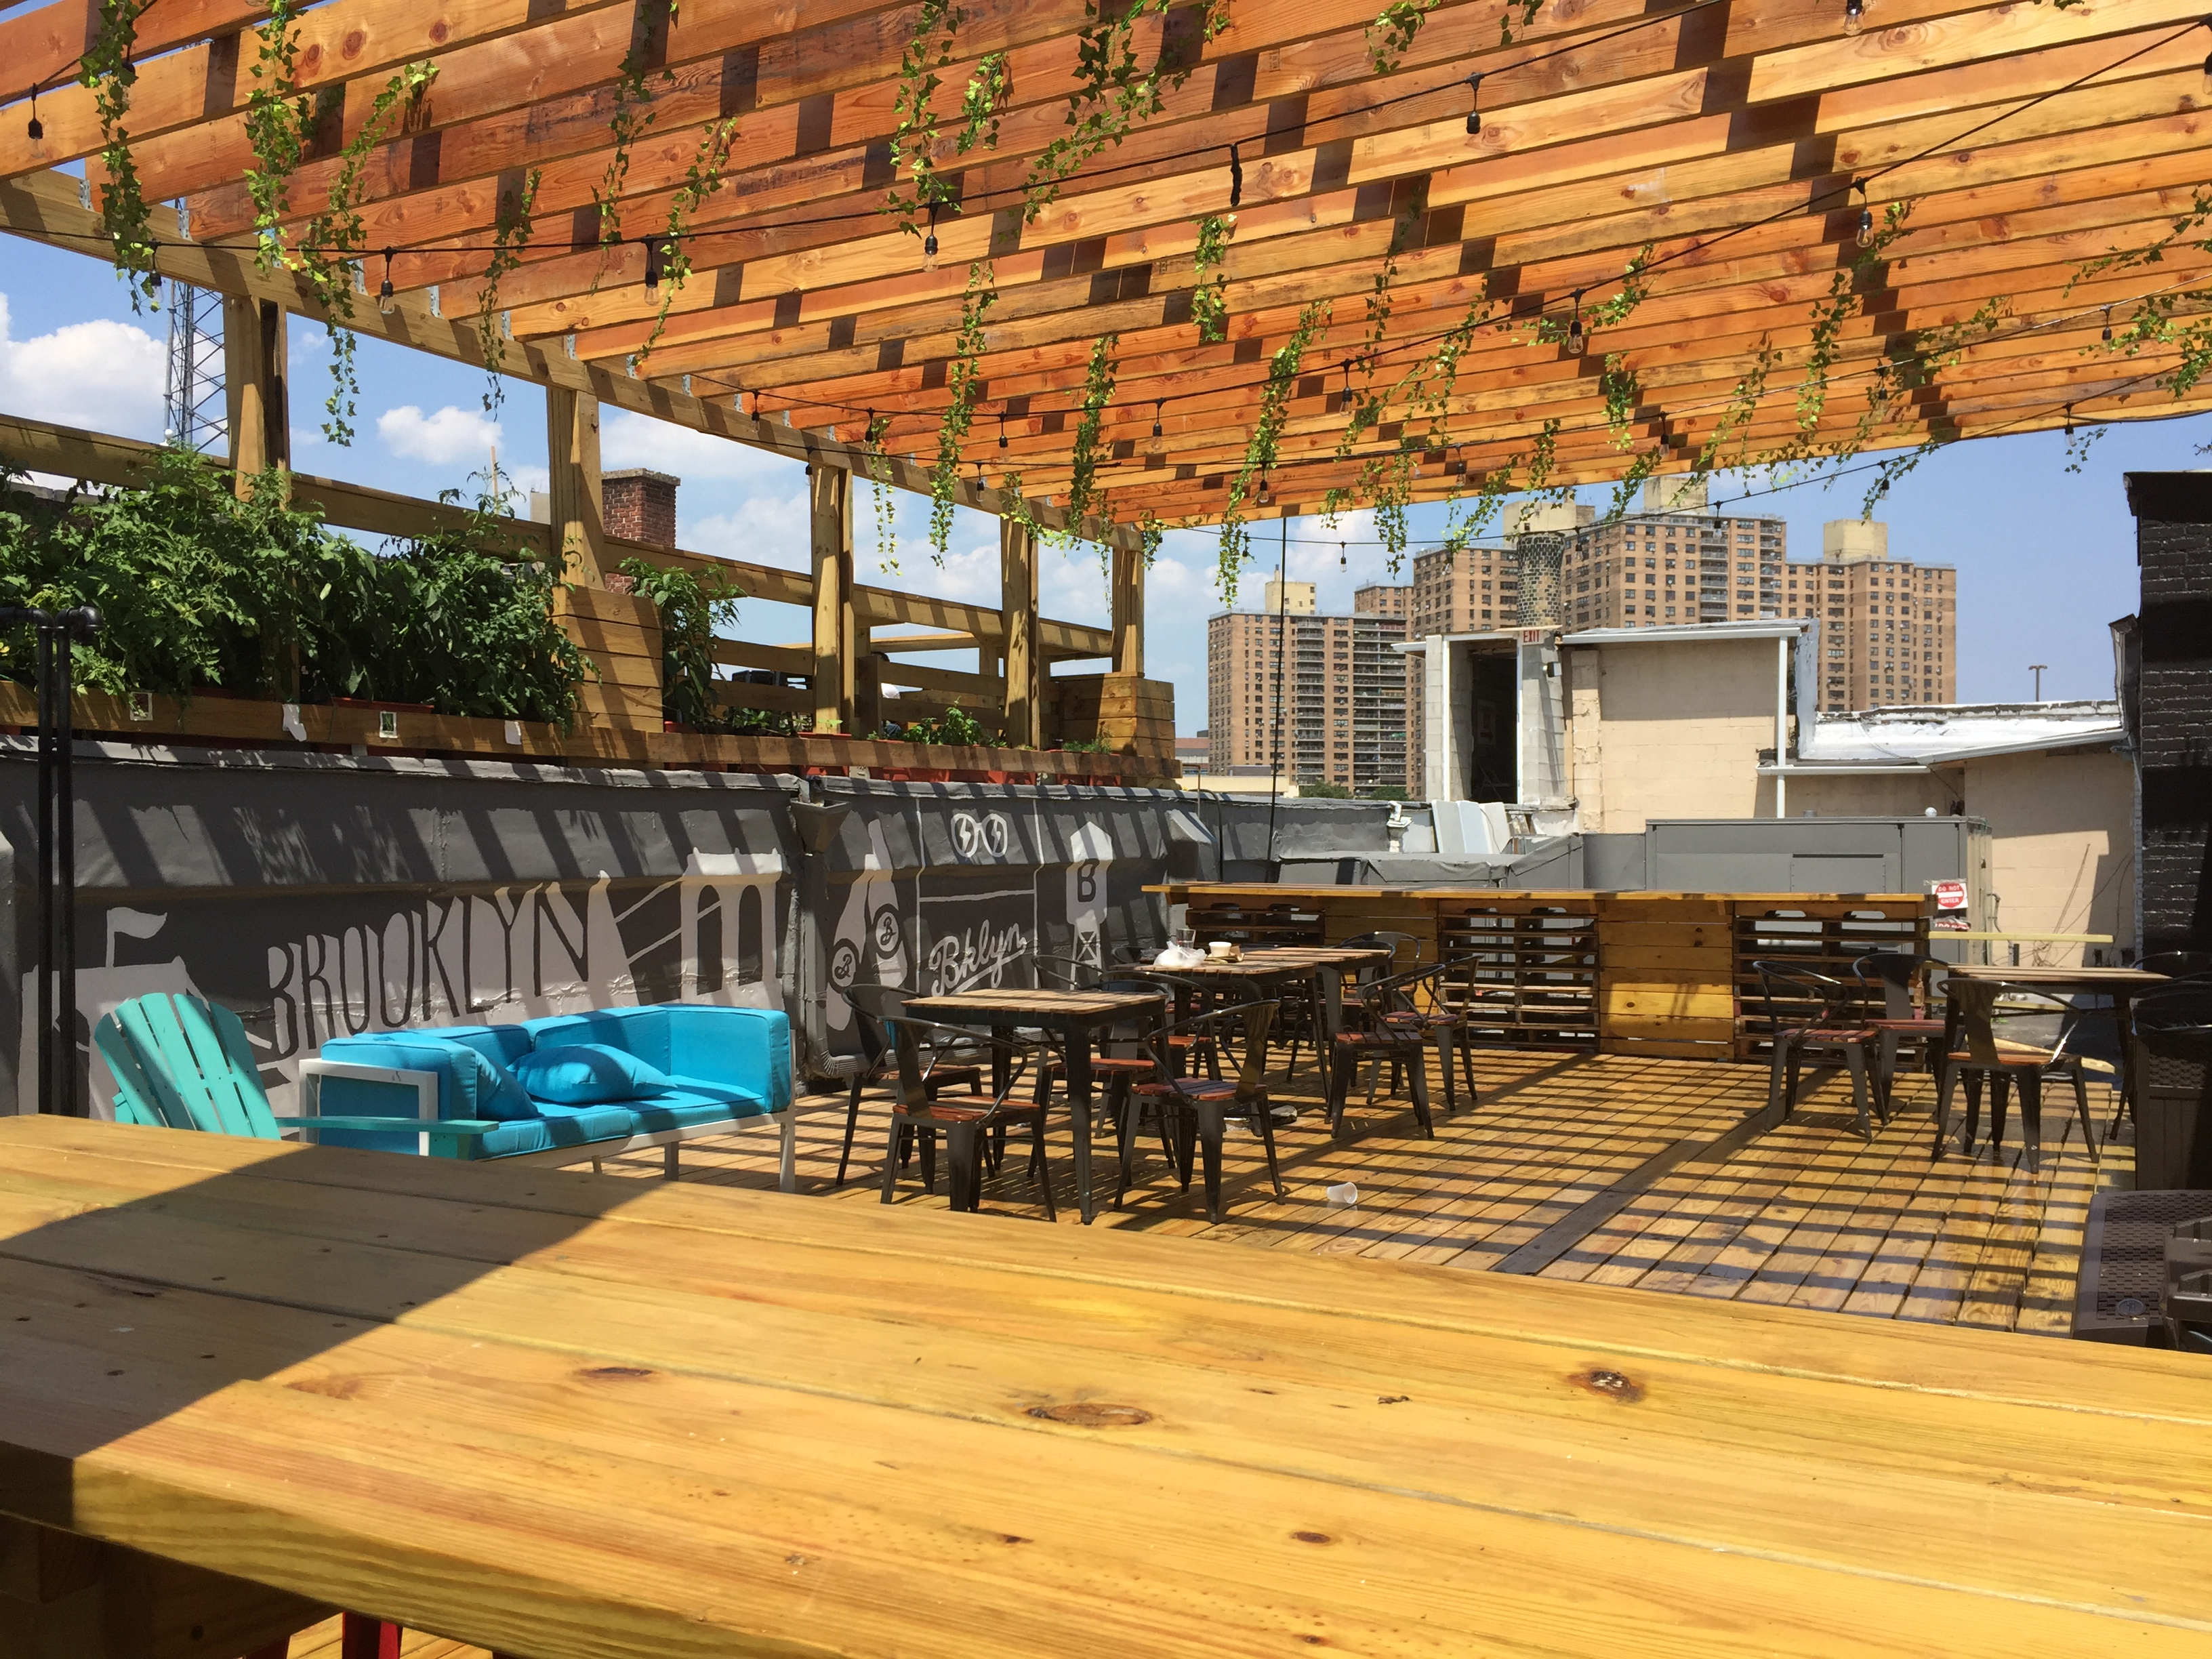 Rooftop Patio With Mezzanine event space at BKLYN COMMONS in New York City, NYC, NY/NJ Area